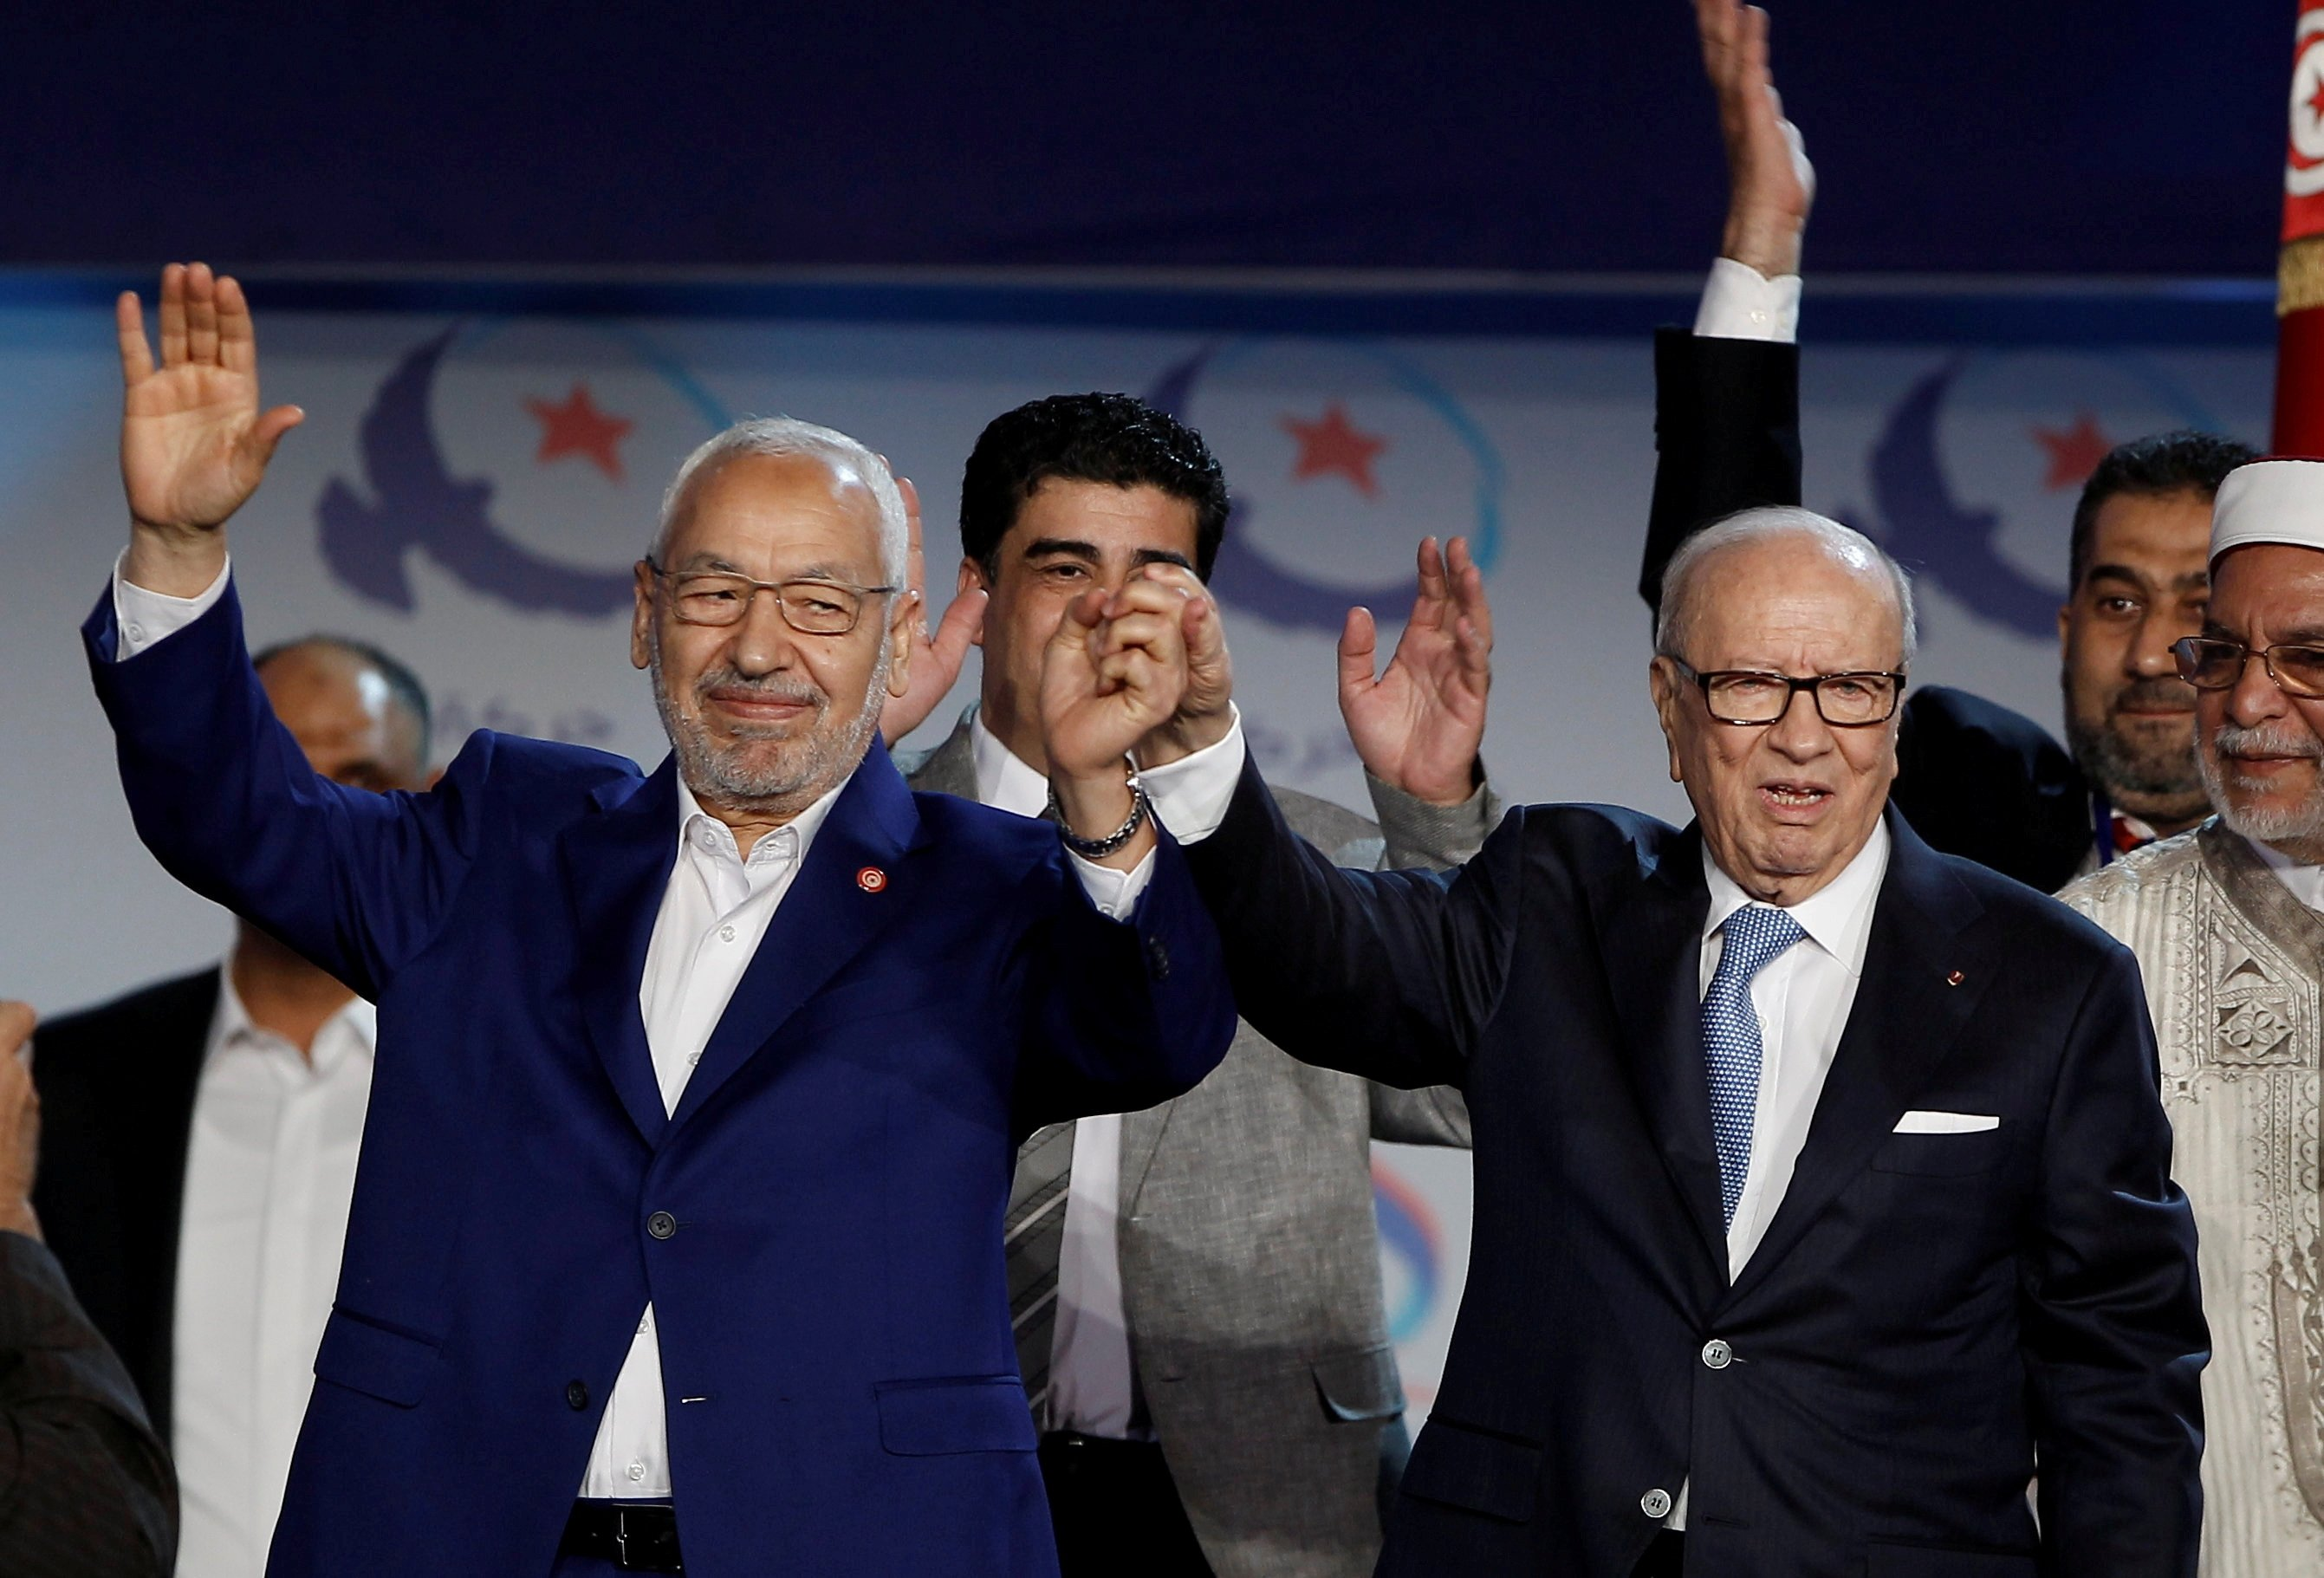 Tunisian President Beji Caid Essebsi (R) and Rached Ghannouchi, leader of the Ennahdha movement, gesture during a congress of the Ennahdha movement in Tunis, Tunisia, May 20, 2016. (REUTERS Photo)